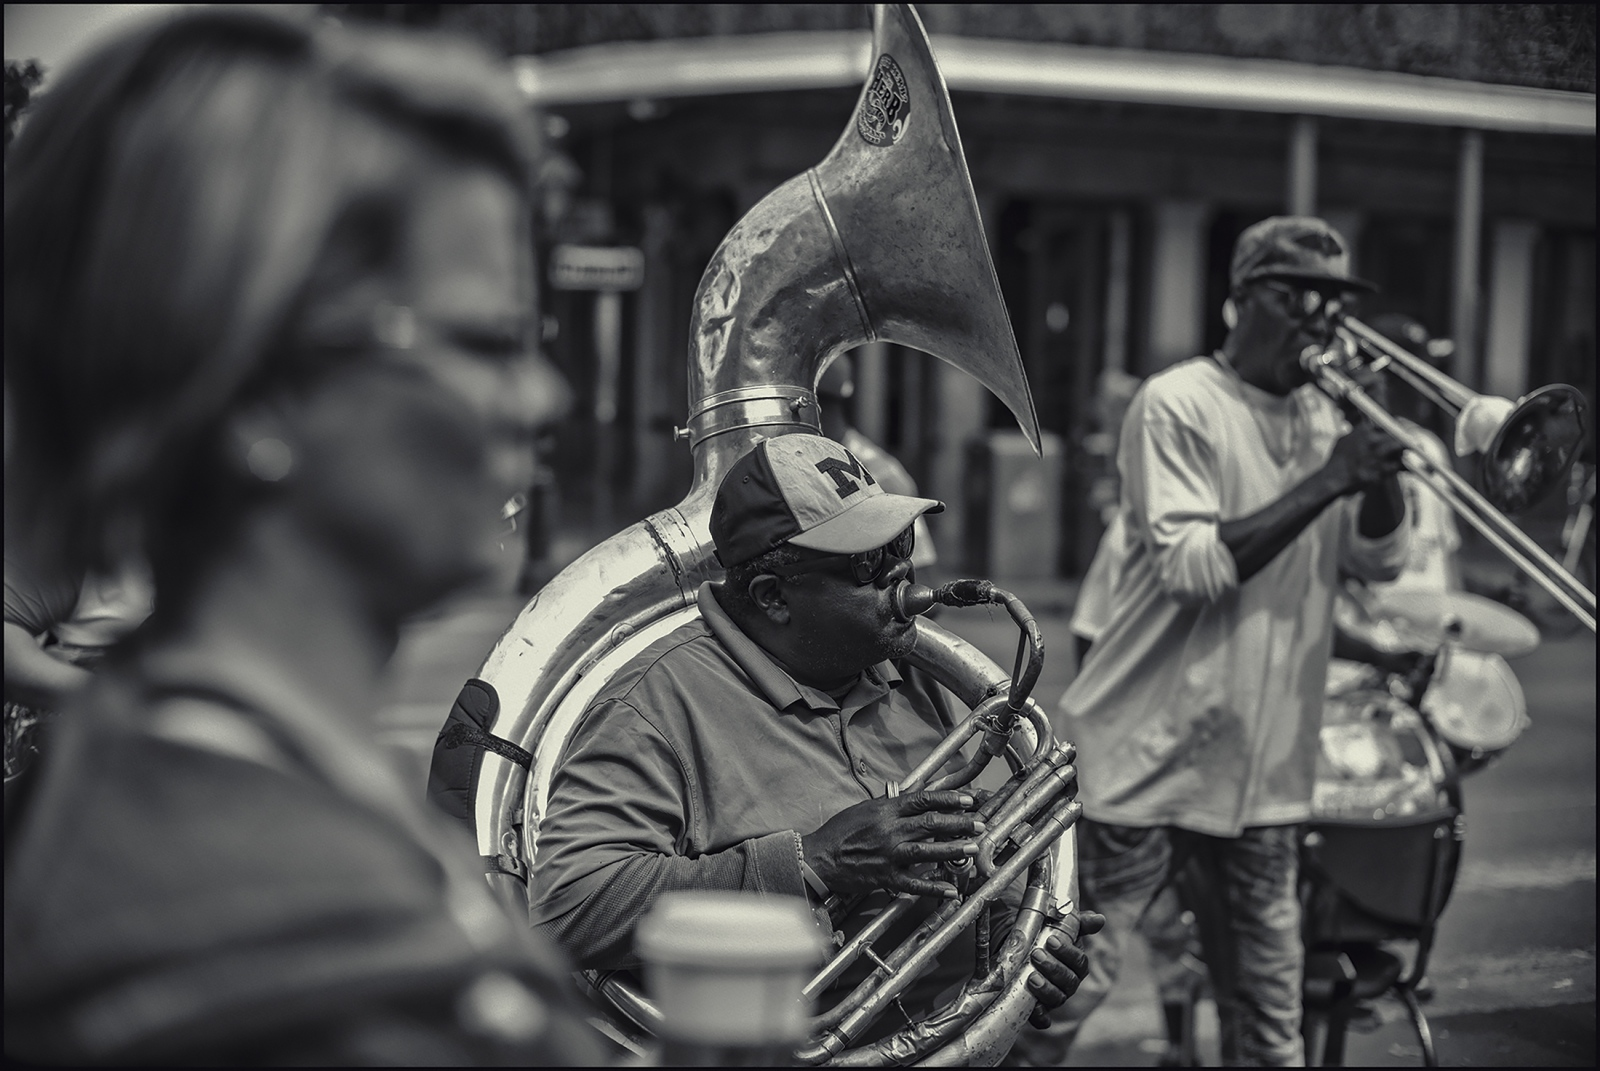 Brass band performing outside French Market. New Orleans, LA. 2019.